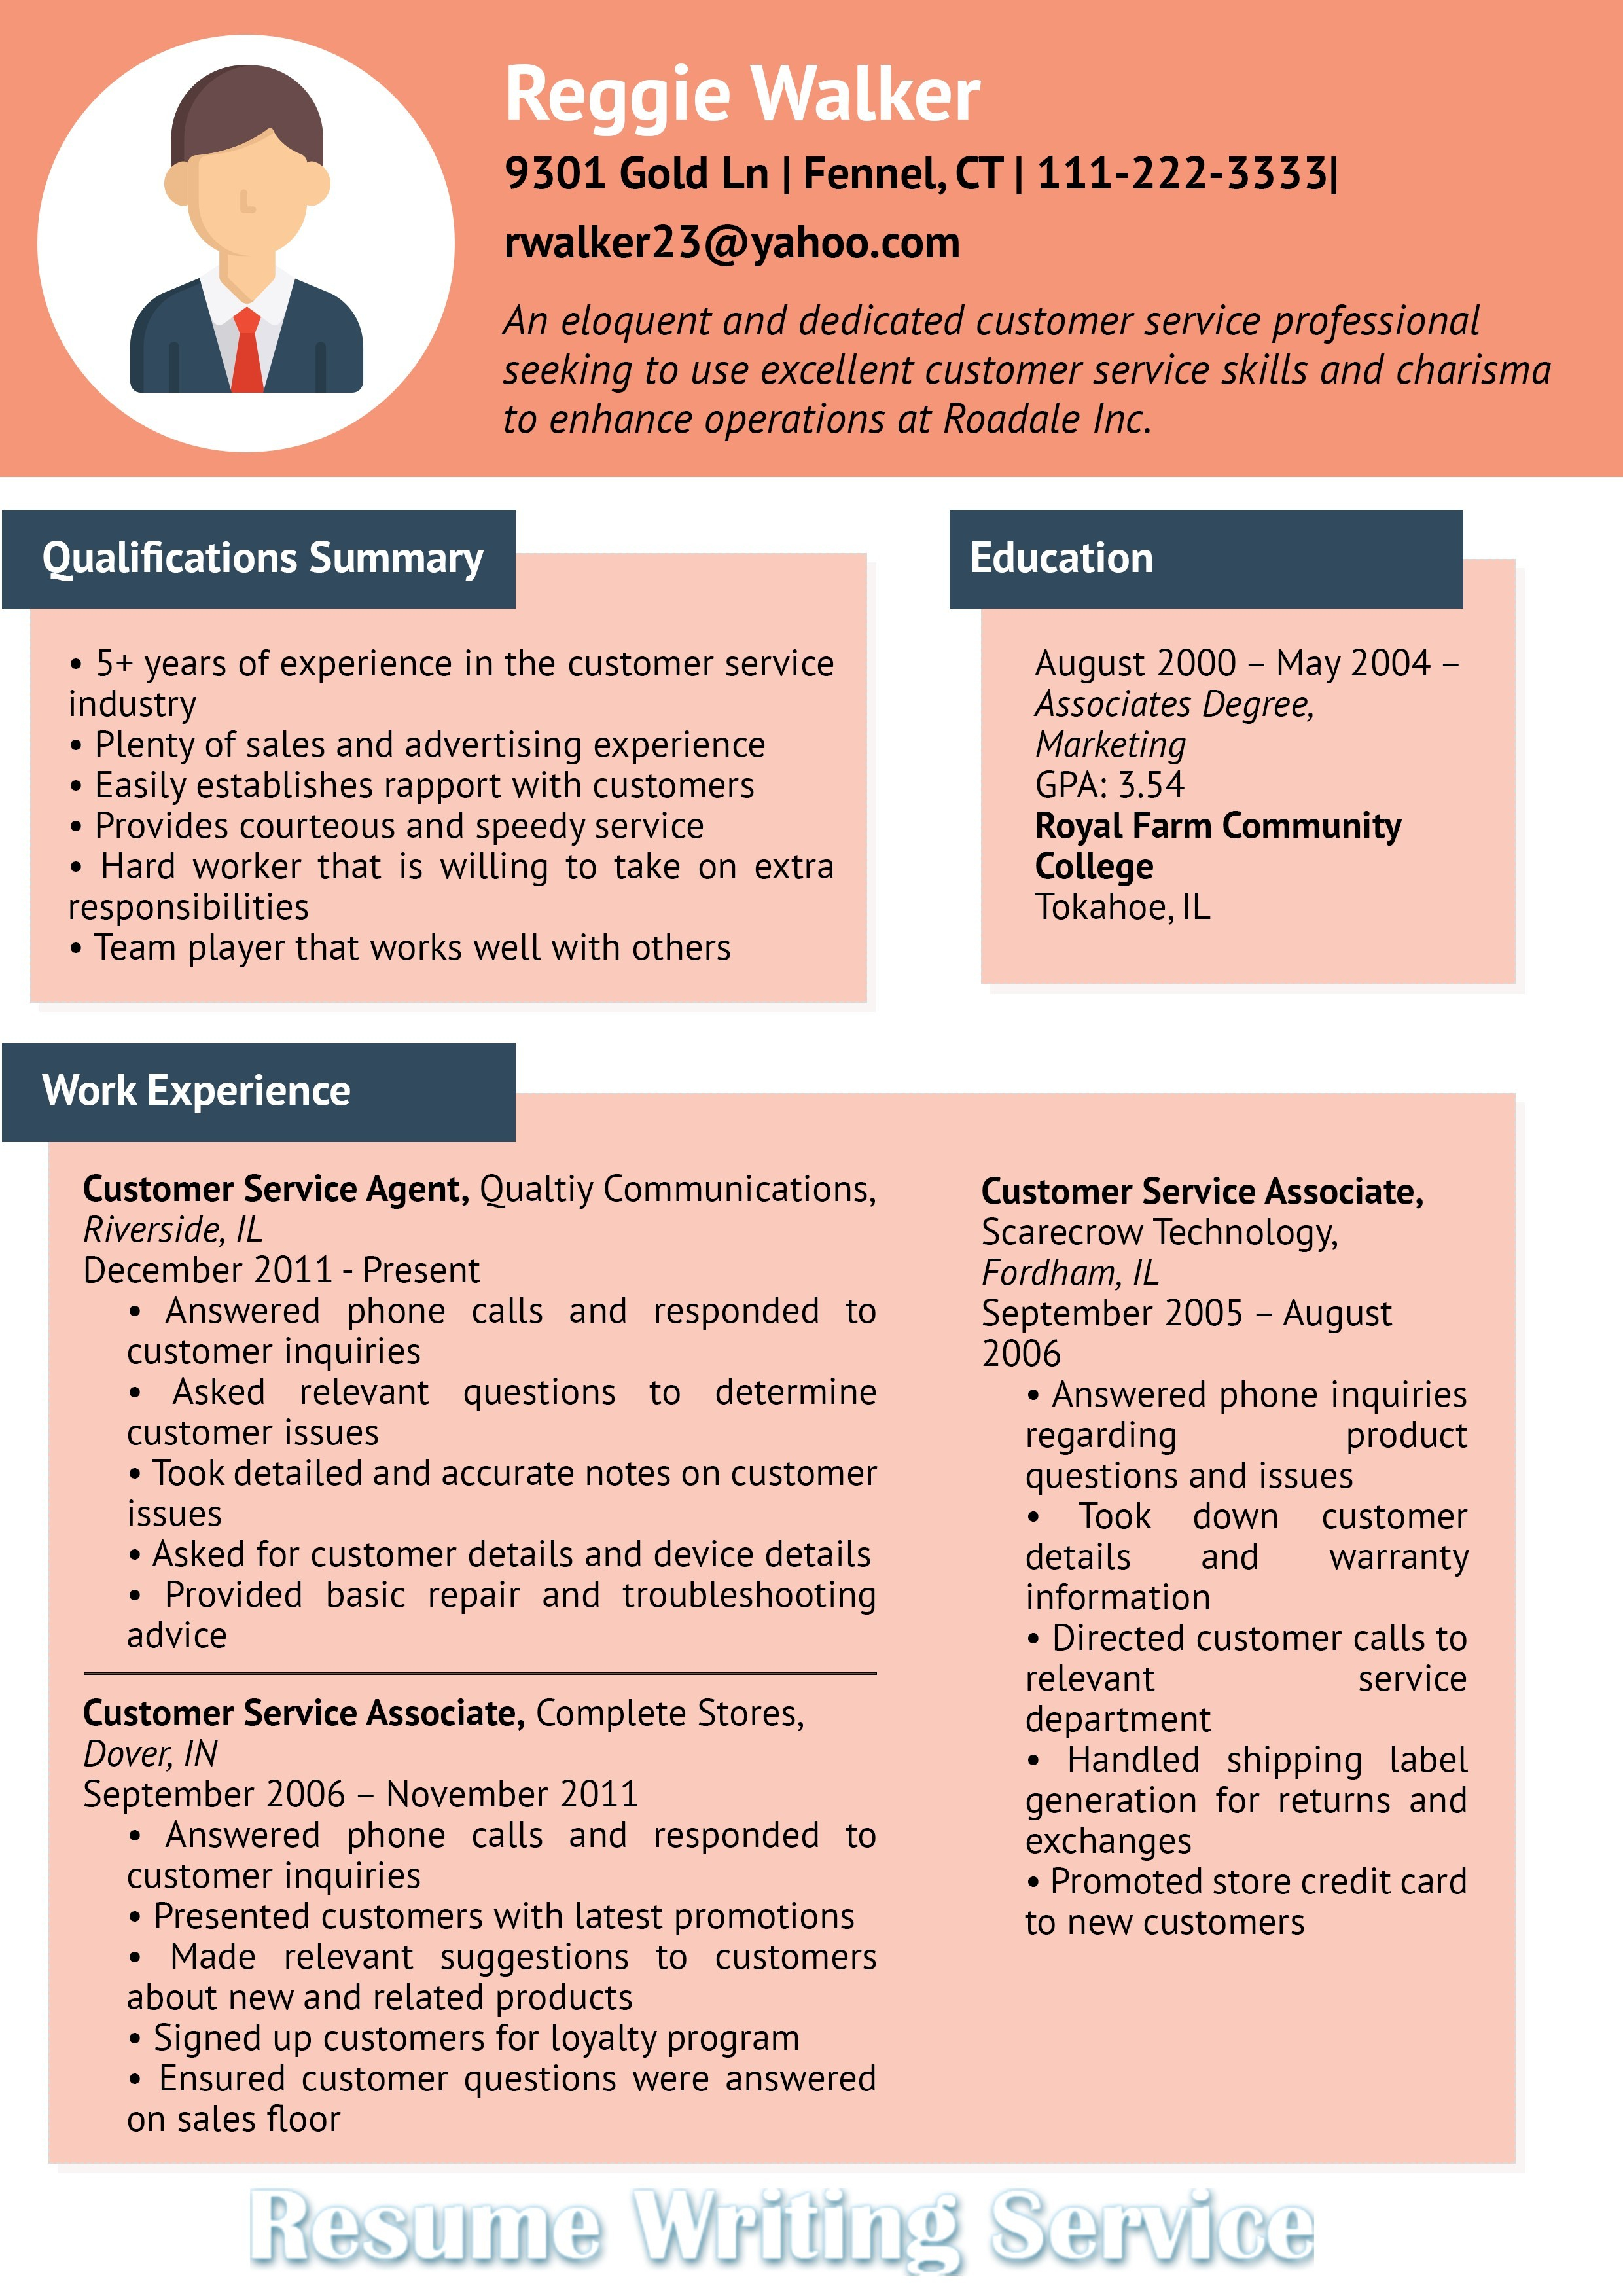 Service Industry Resume Examples - Profile for Resume Best Profile Section Resume Examples Examples